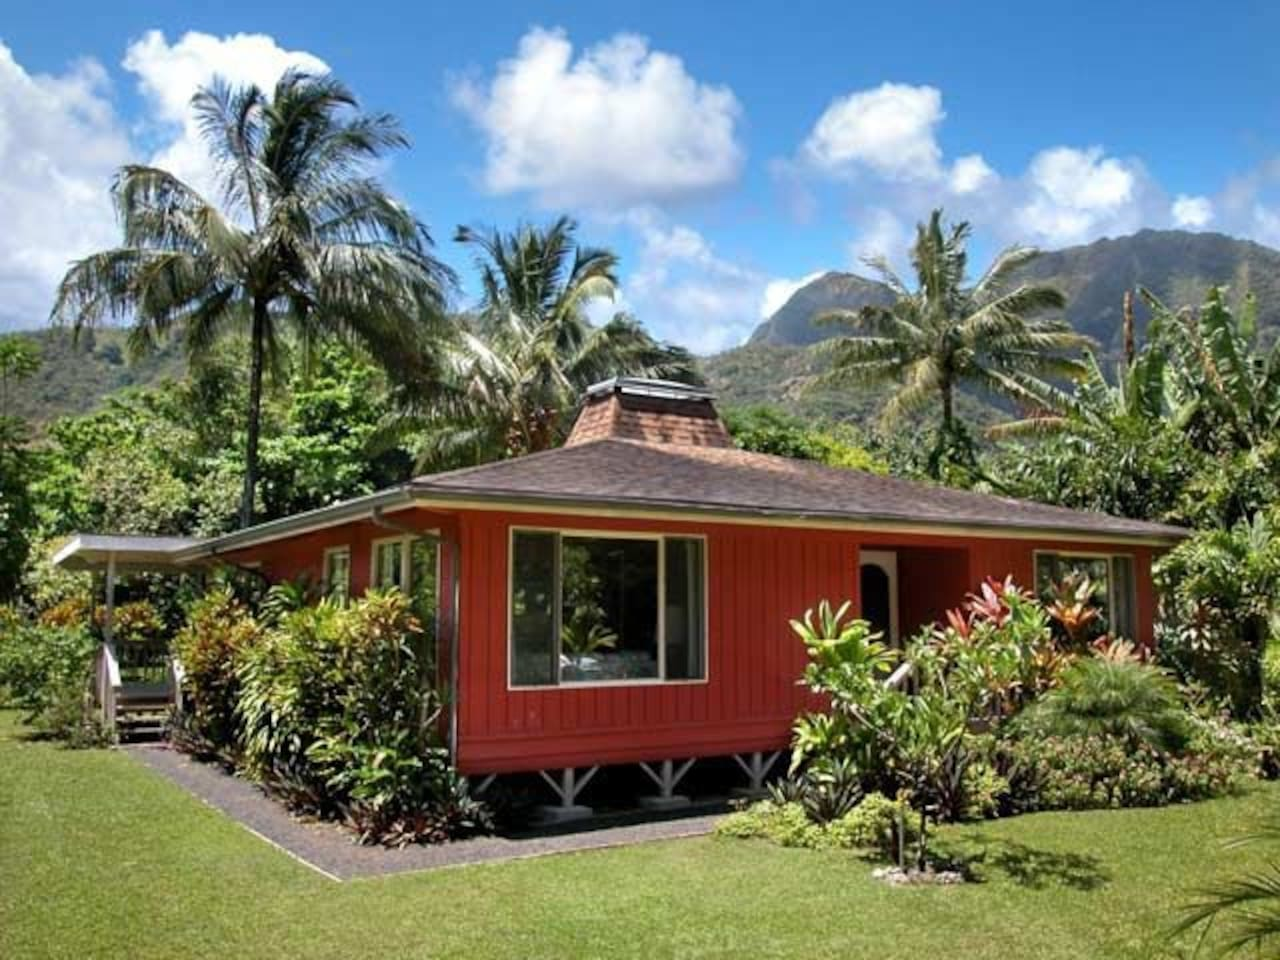 Traditional Hawaiian style cottage with privacy landscaping and waterfall views